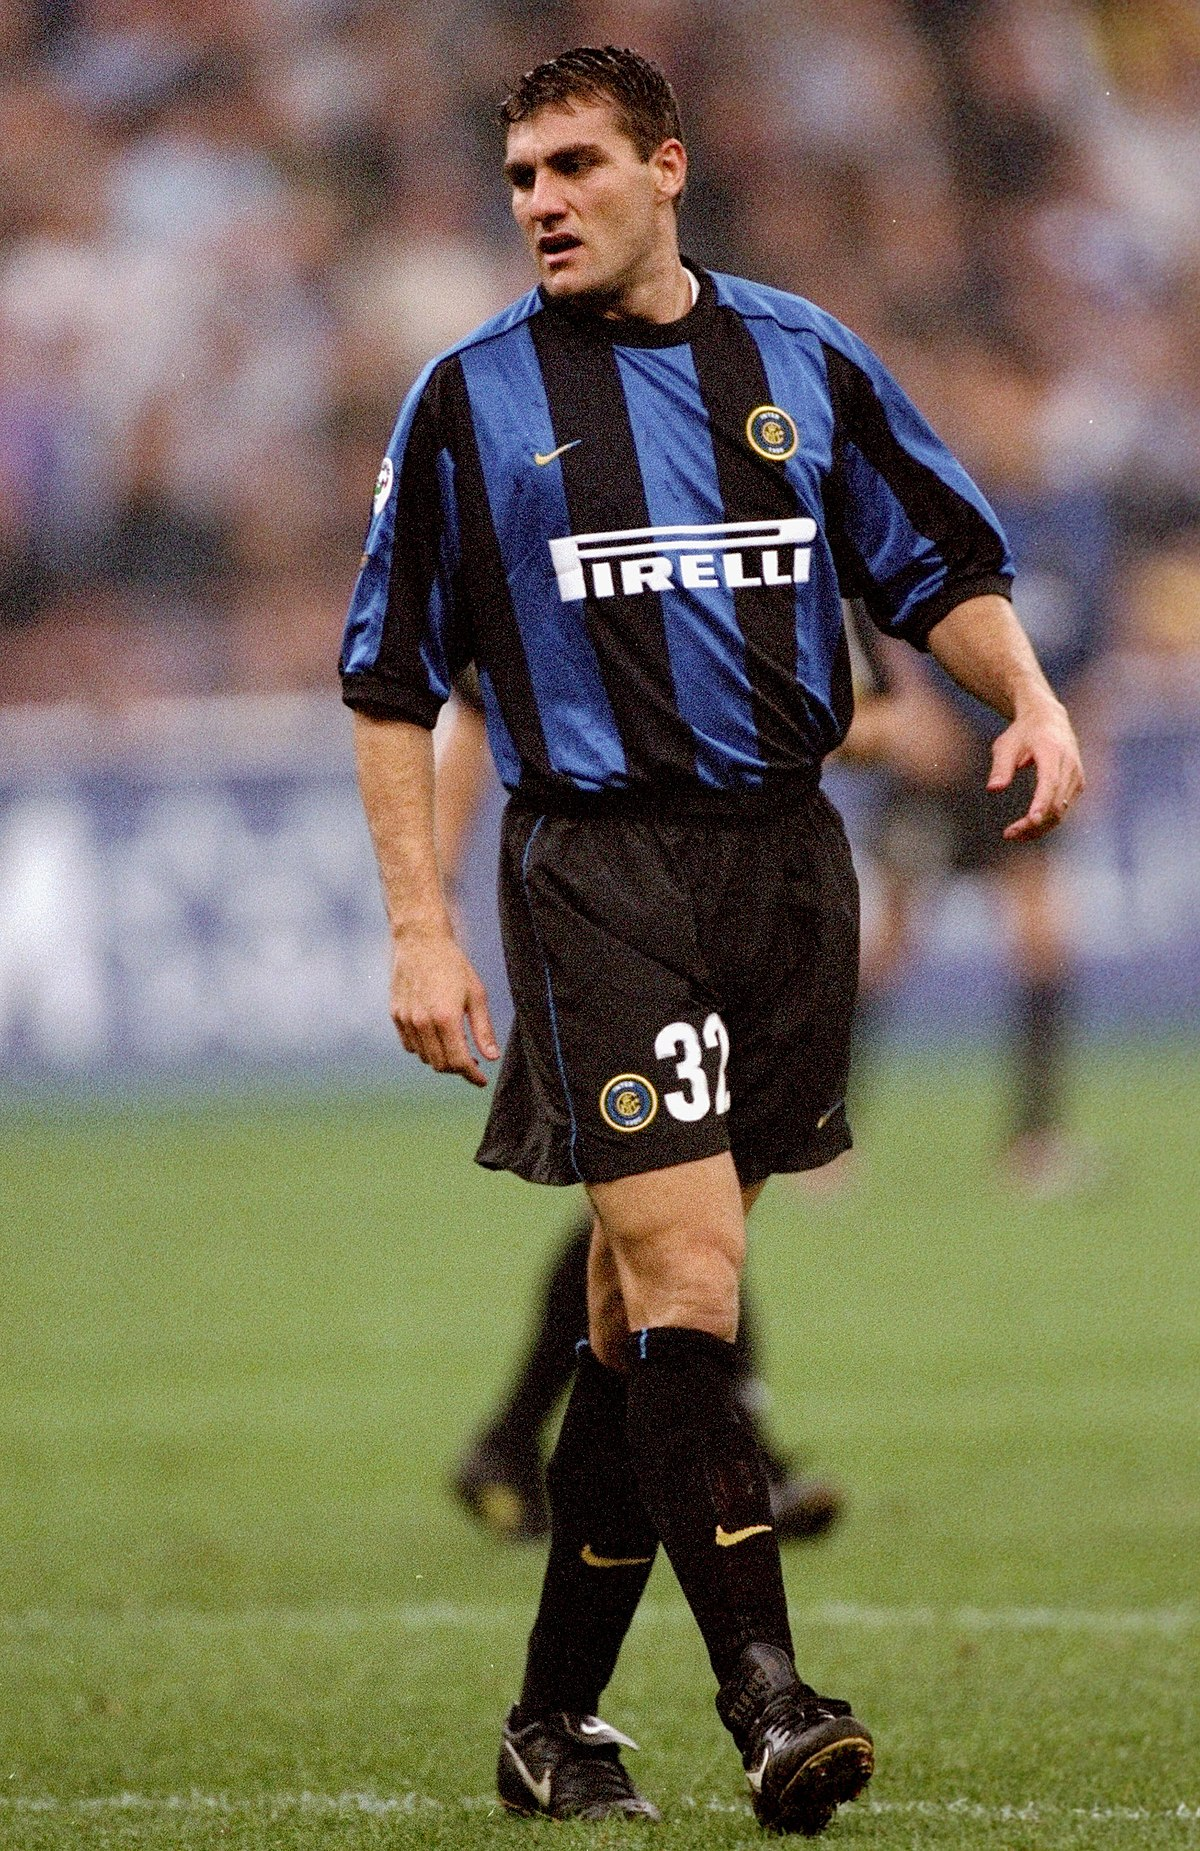 Christian Vieri - Wikipedia